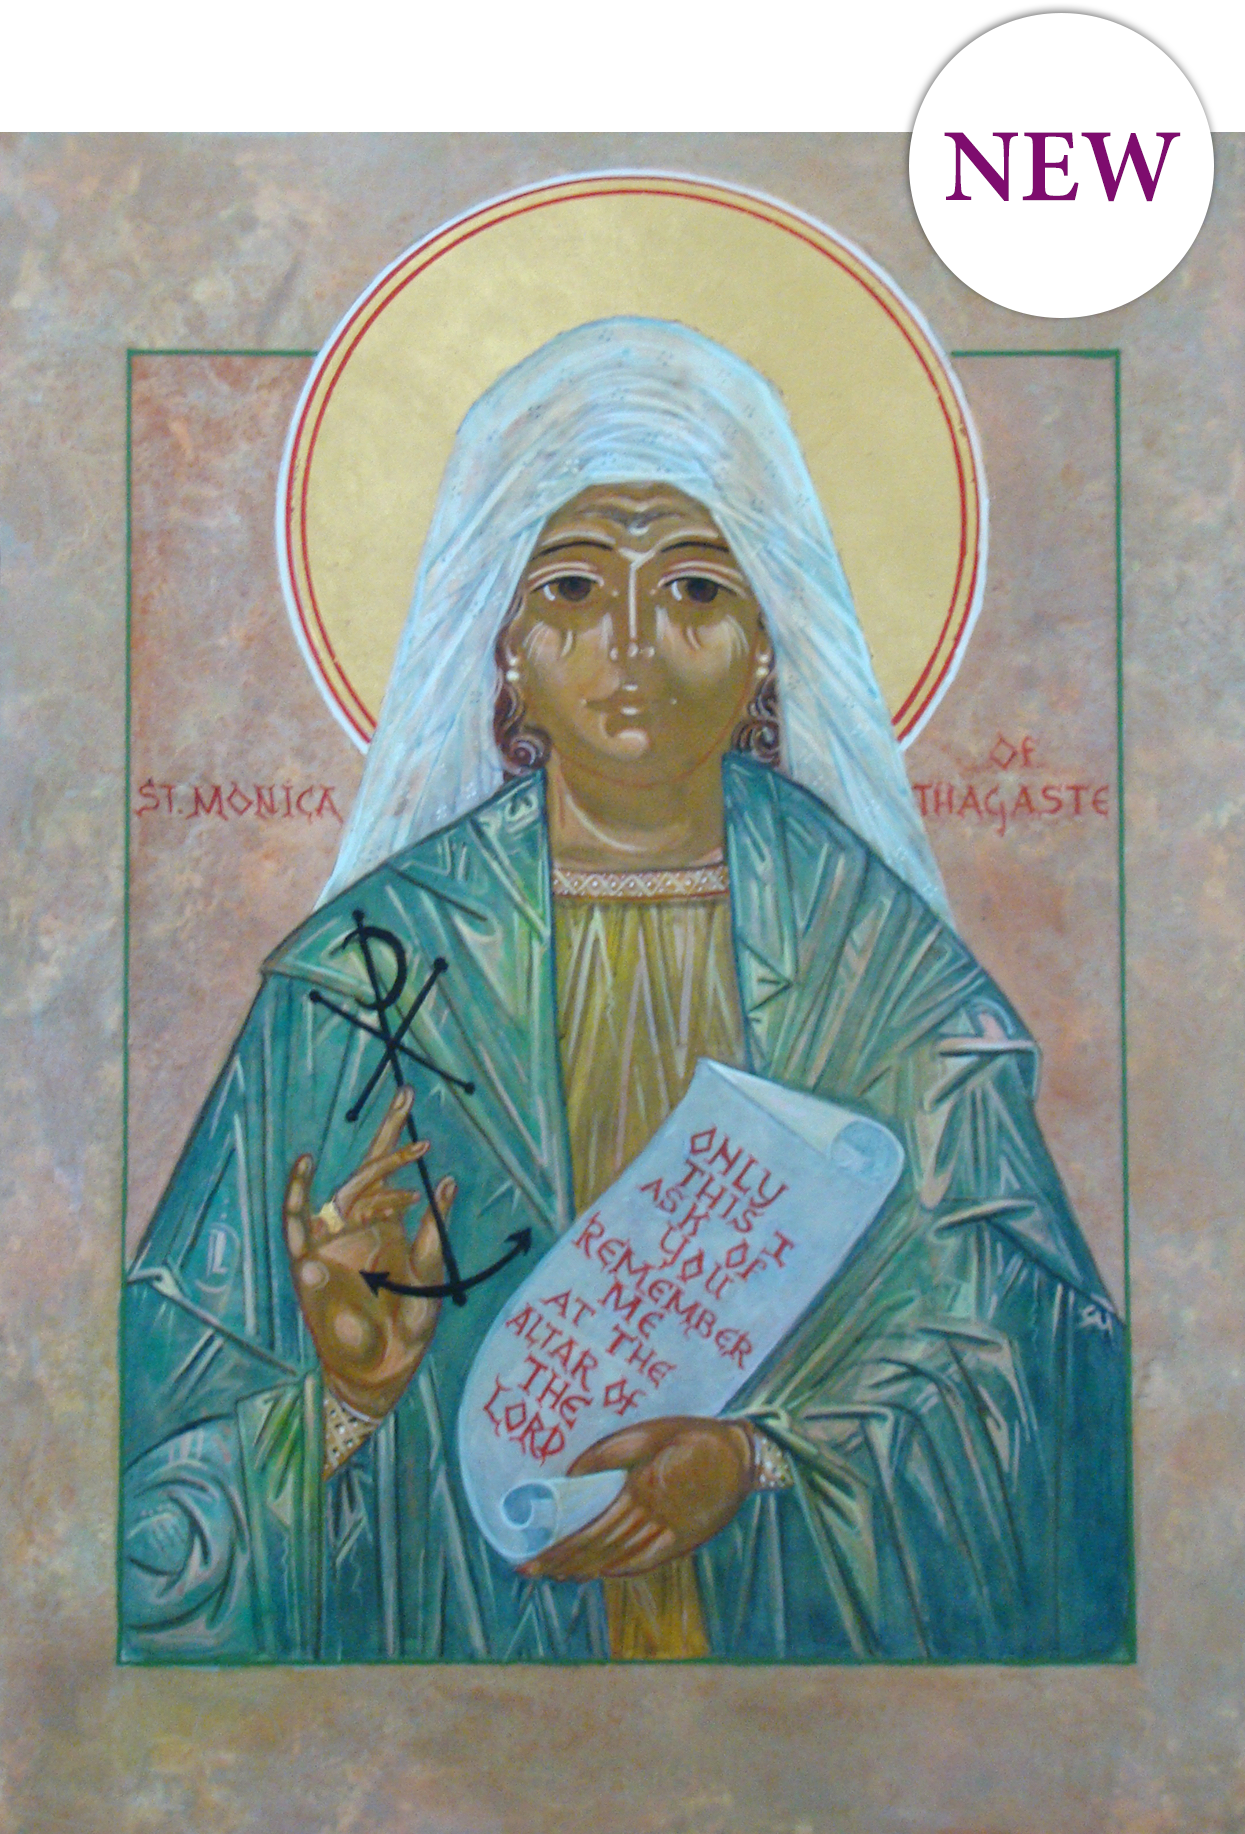 """SAINT MONICA SYMPATHY CARD   Suggested donation: $10.00 Size: 5 x 7   This new sympathy Mass card features an icon of Saint Monica by Richard G. Cannuli, O.S.A. and the words of Saint Monica at the time of her death, """"Only this I ask of you, remember me at the altar of the Lord."""""""